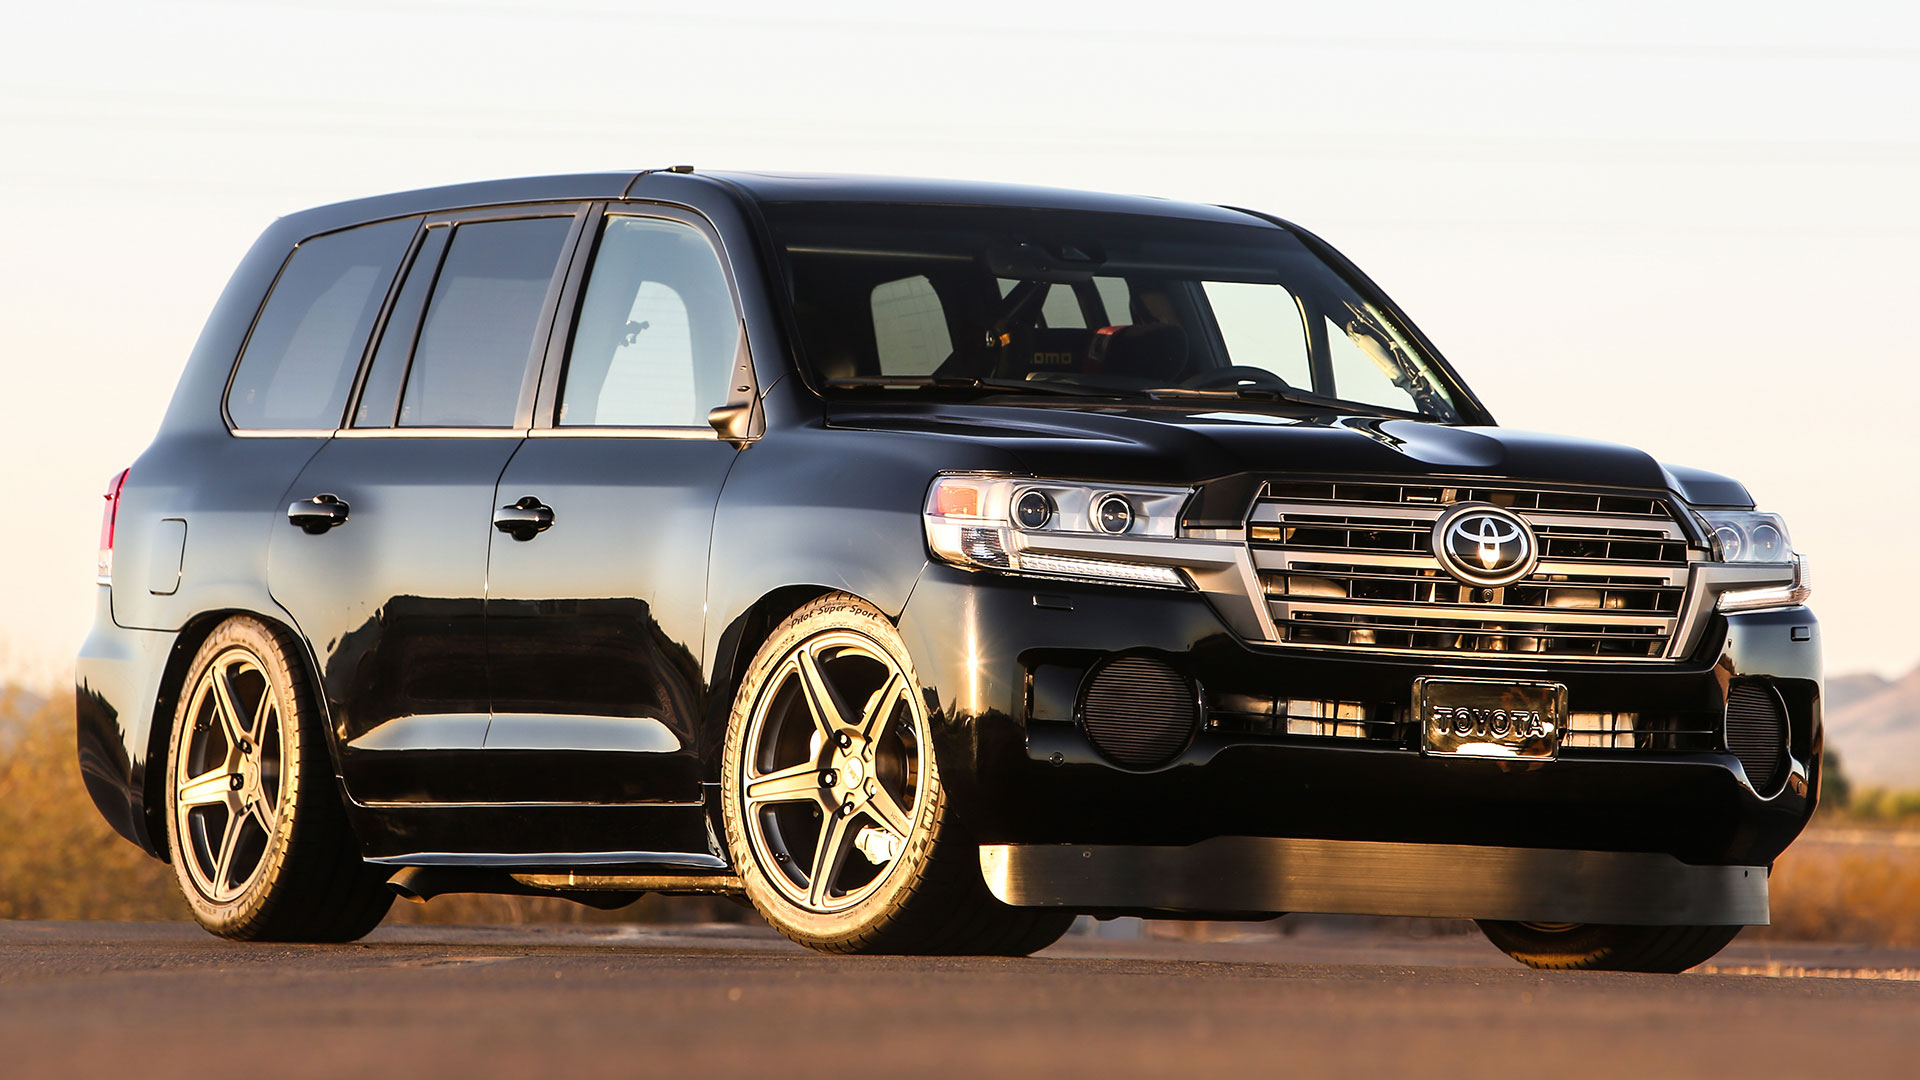 toyota built a 2 000 hp 220 mph land cruiser for sema the drive https www thedrive com news 5815 toyota built a 2 000 hp 220 mph land cruiser for sema